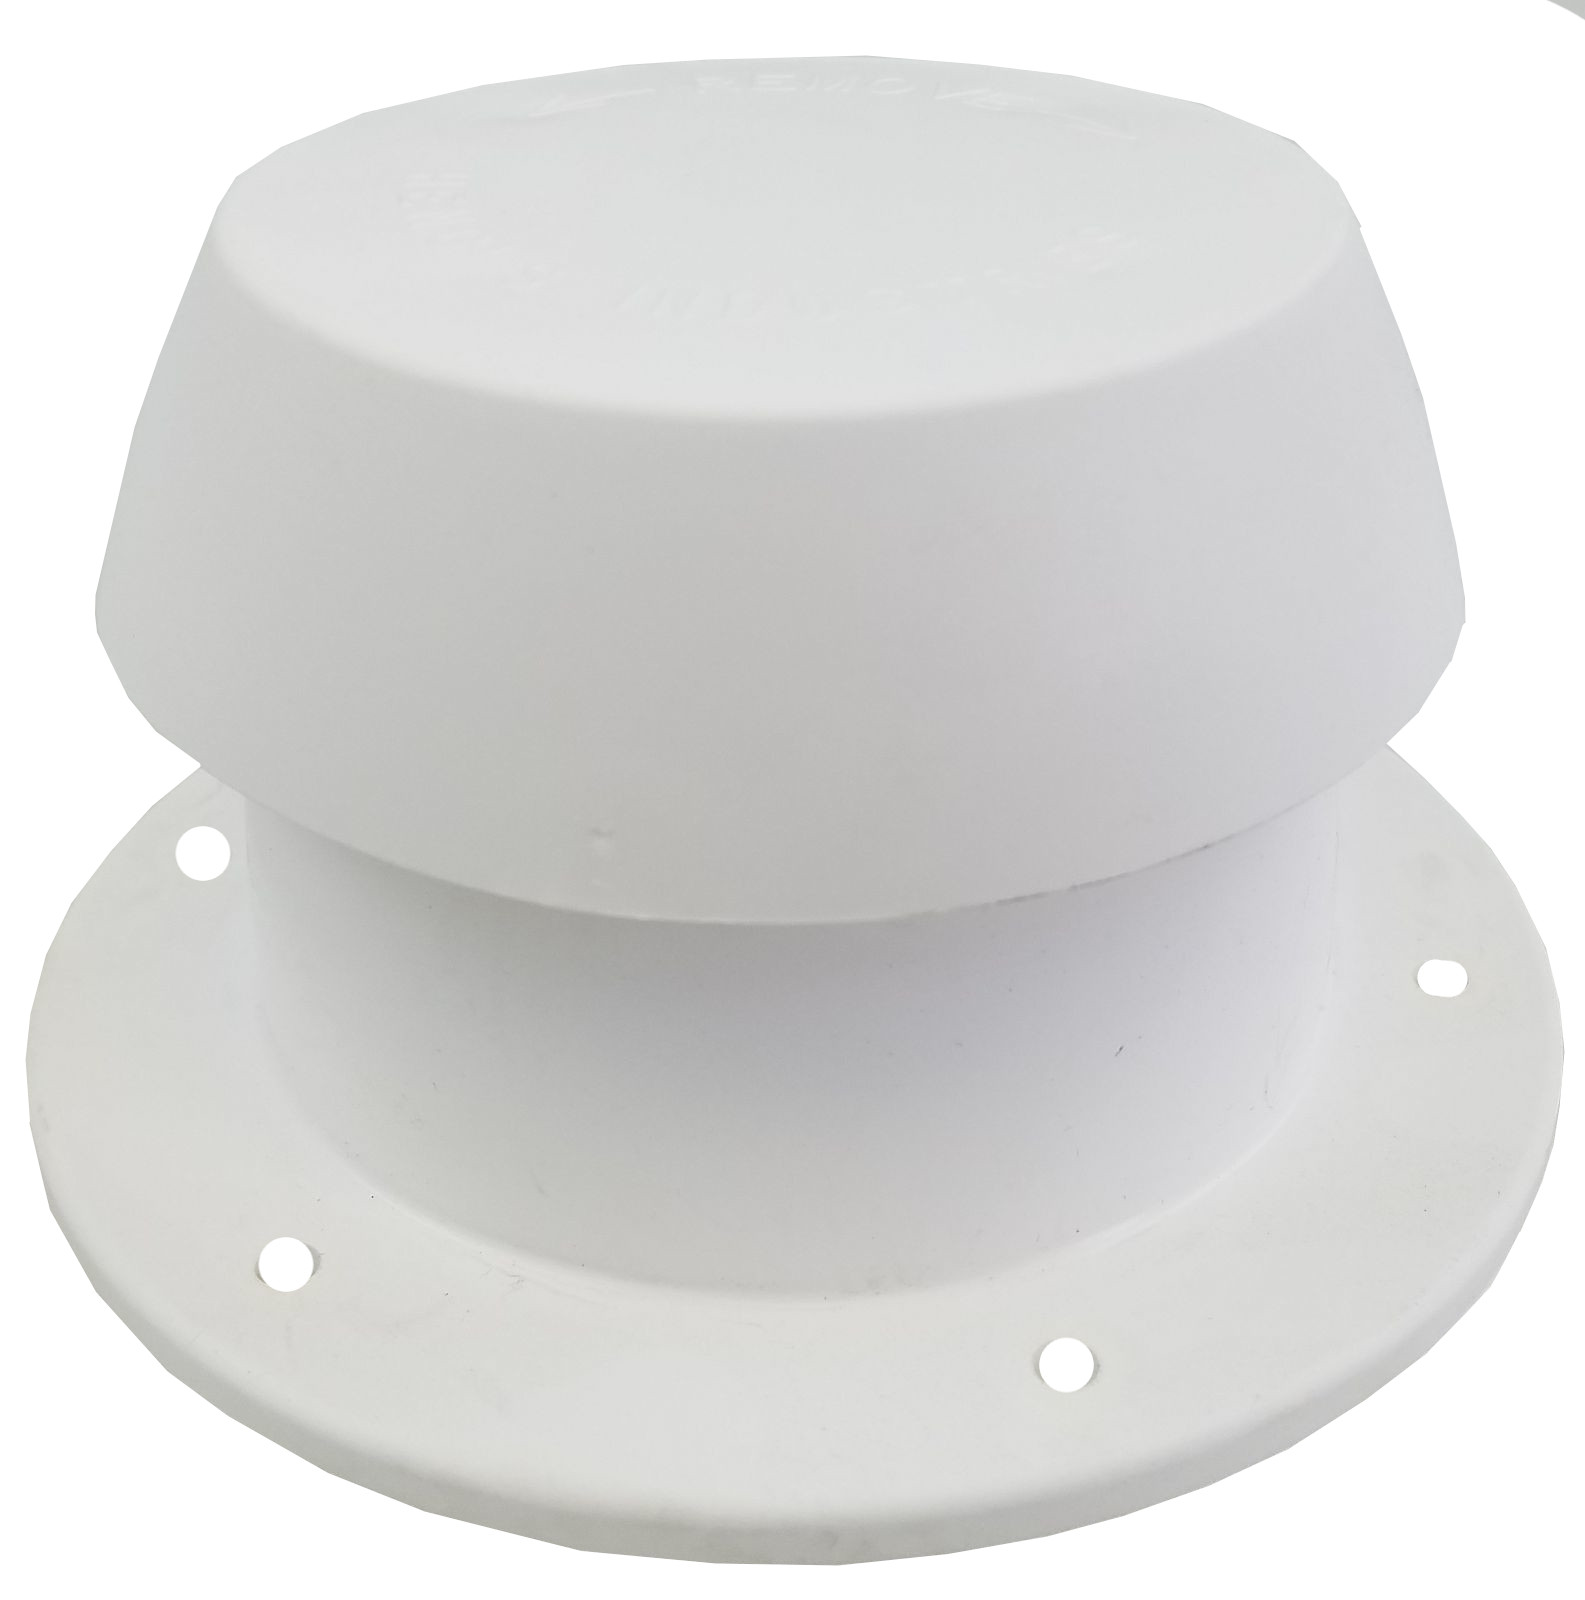 Rv Plastic Plumbing Pipe Cap Polar White By Heng S 10001 C